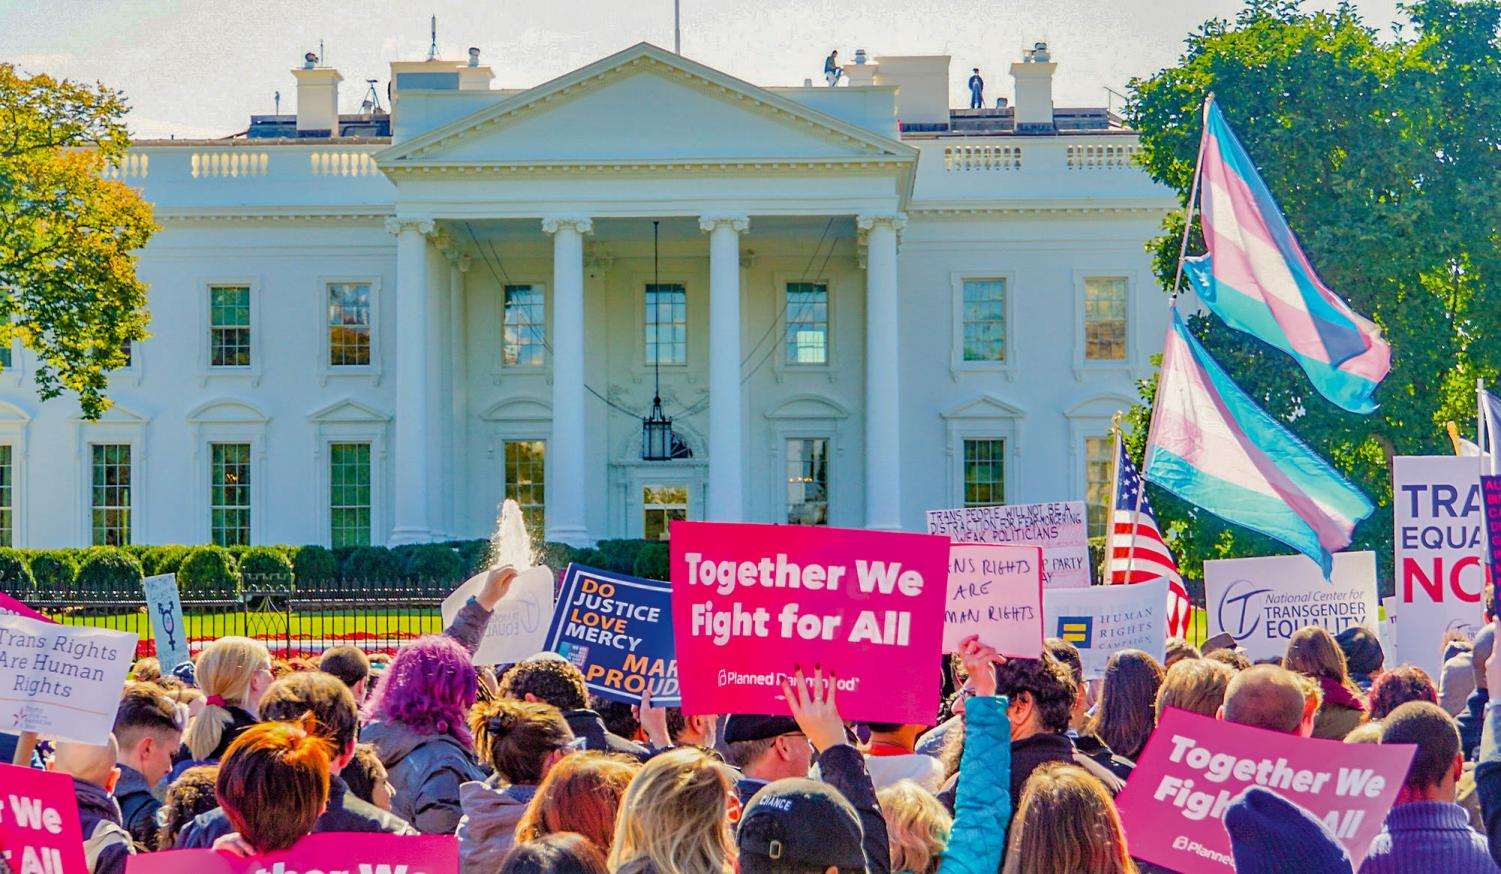 The United States alone has 1.4 million transgender adults.